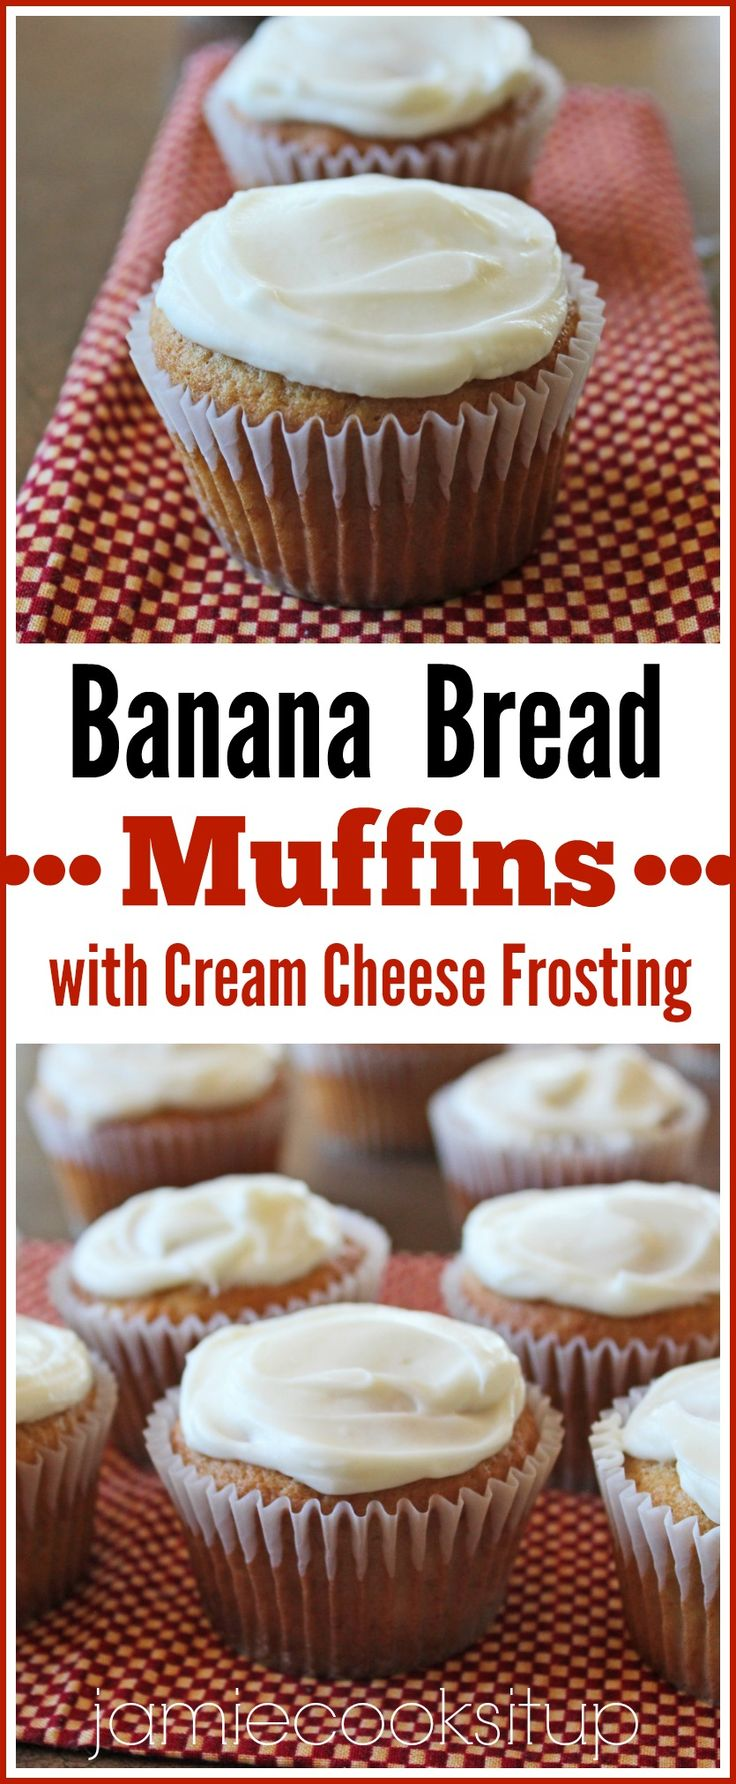 Banana Bread Muffins with Cream Cheese Frosting from Jamie Cooks It Up! Loaded with yummy banana bread flavor and a silky cream cheese frosting that is divine. A great way to use up those brown spotted bananas.